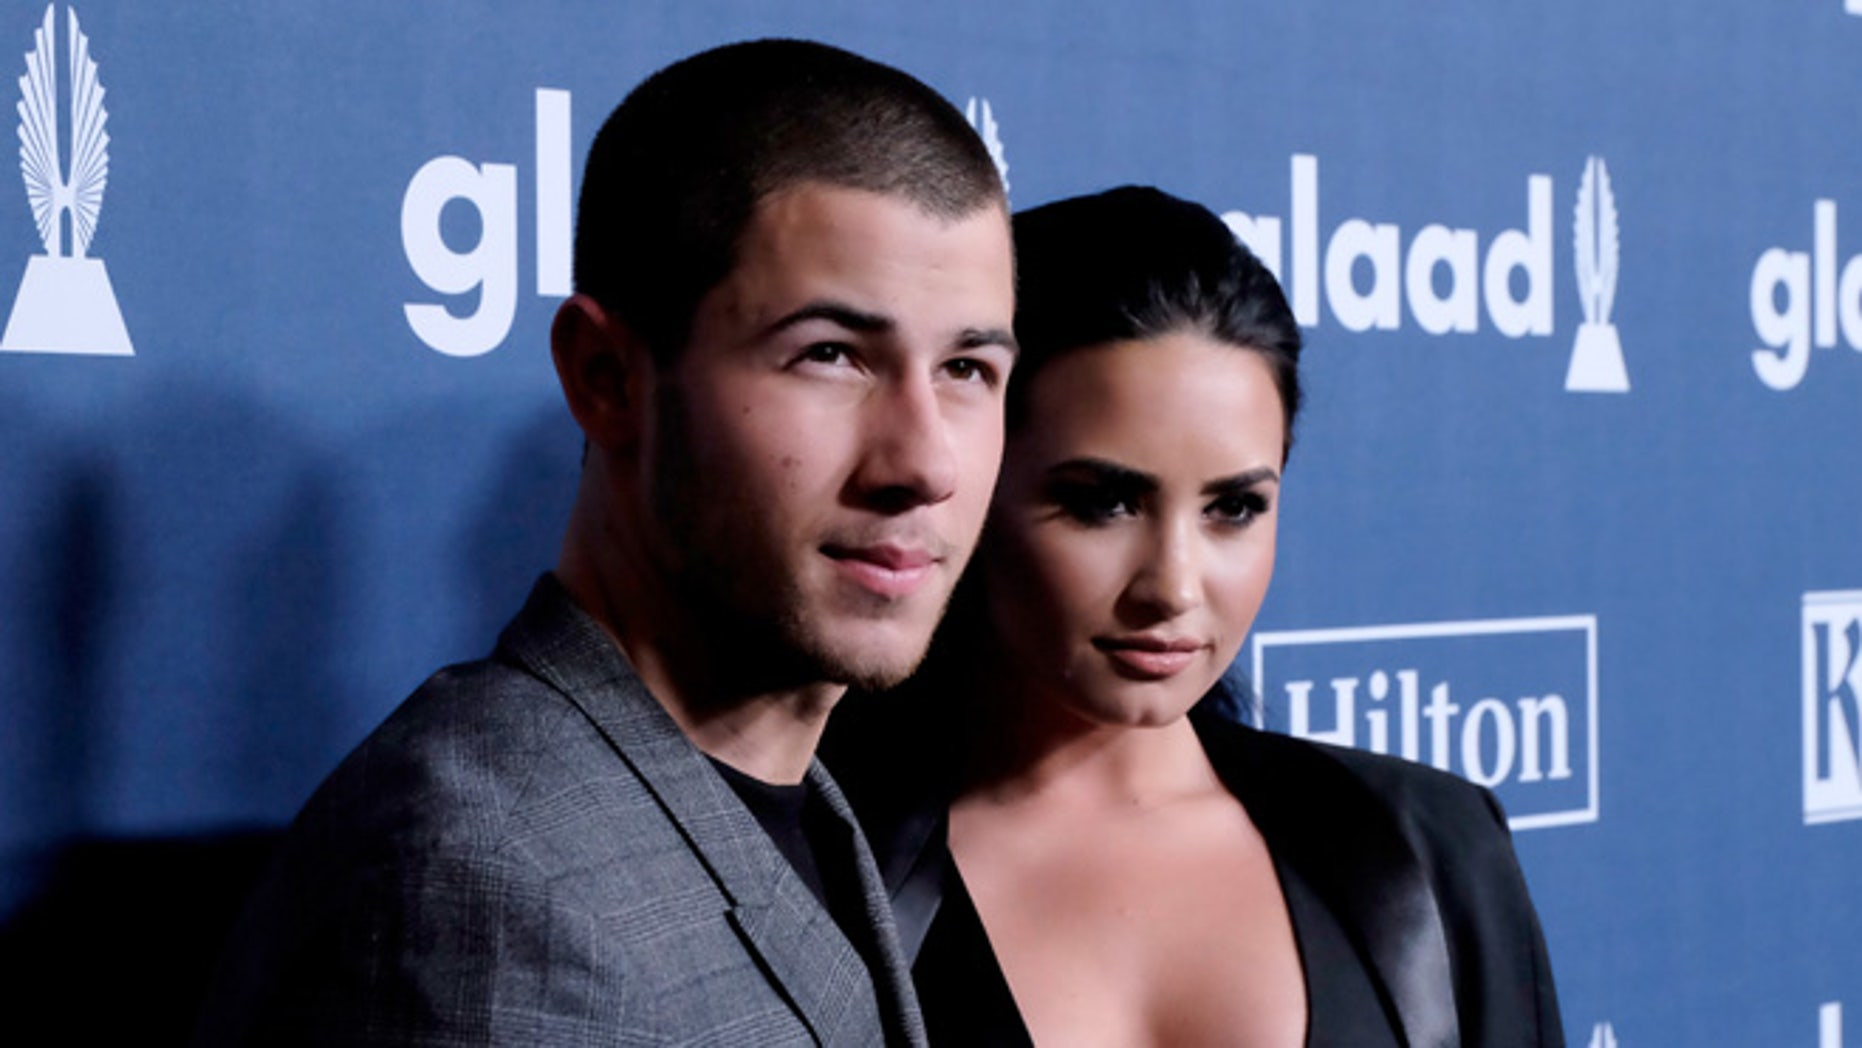 Nick Jonas and Demi Lovato attend the Annual GLAAD Media Awards at the Beverly Hilton Hotel on April 2, 2016.